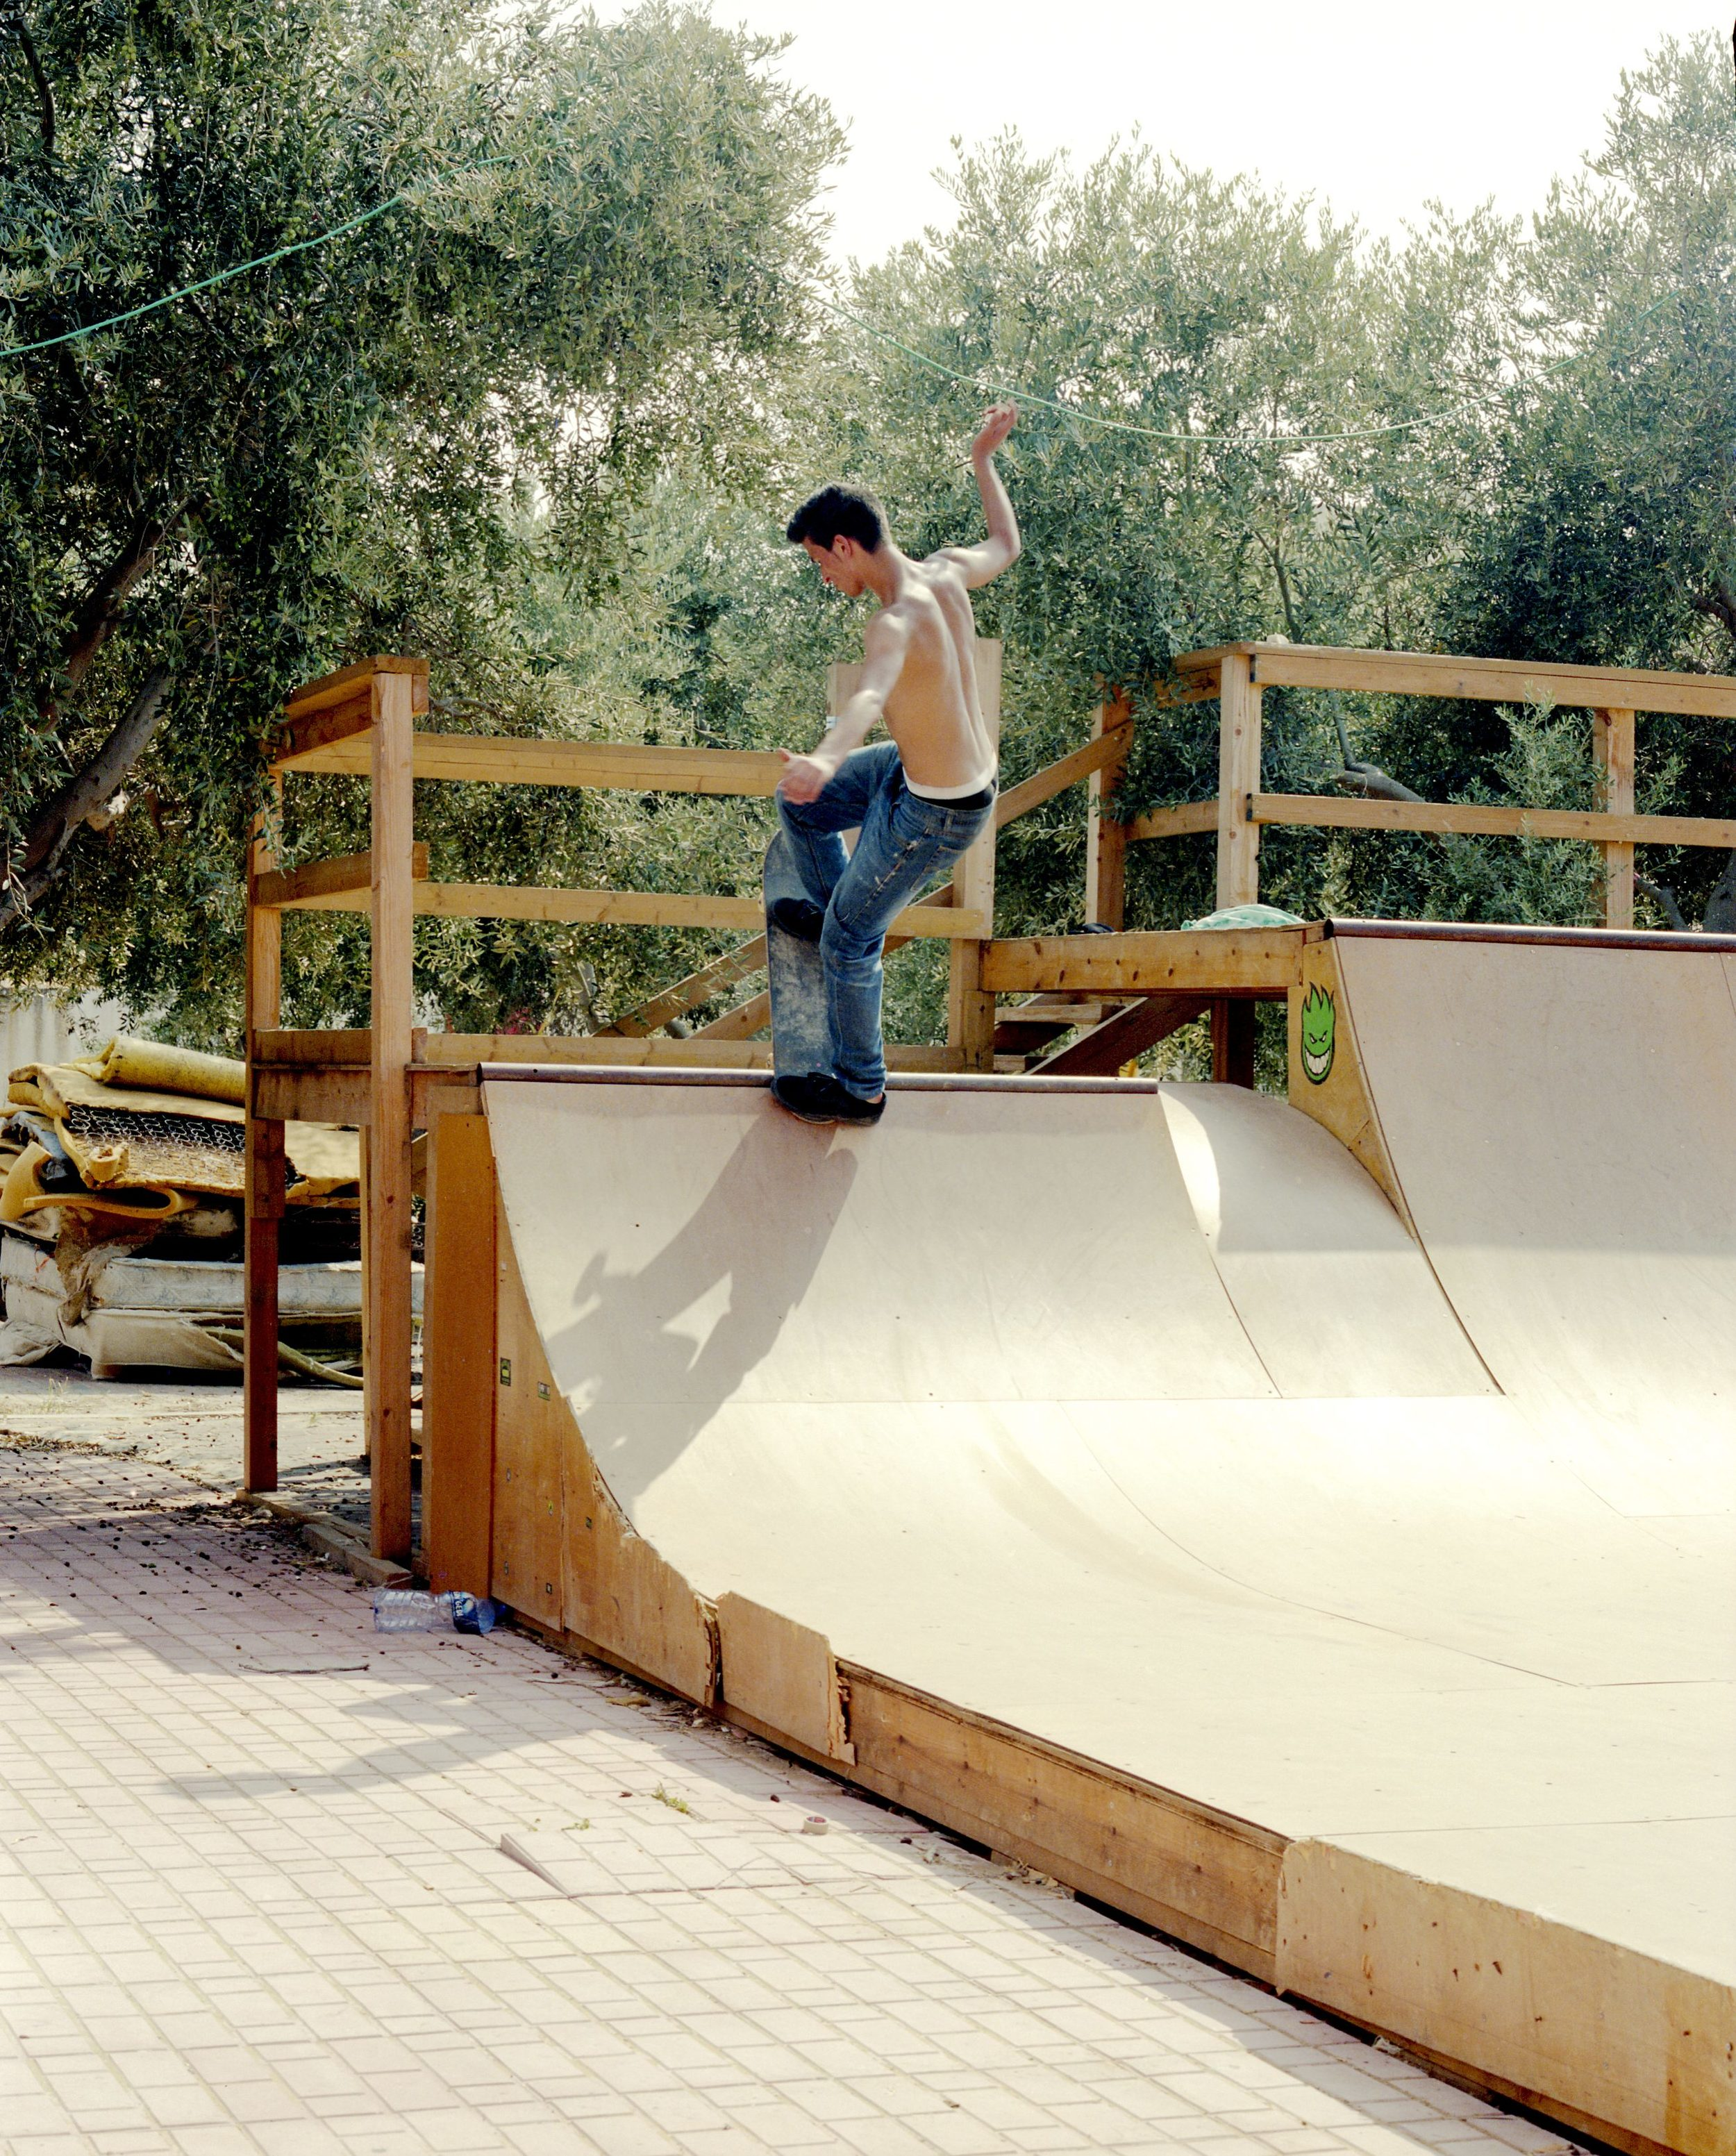 Adham pulls a blunt-to-rock fakie at the Tashkeel ramp in Qalqilya.